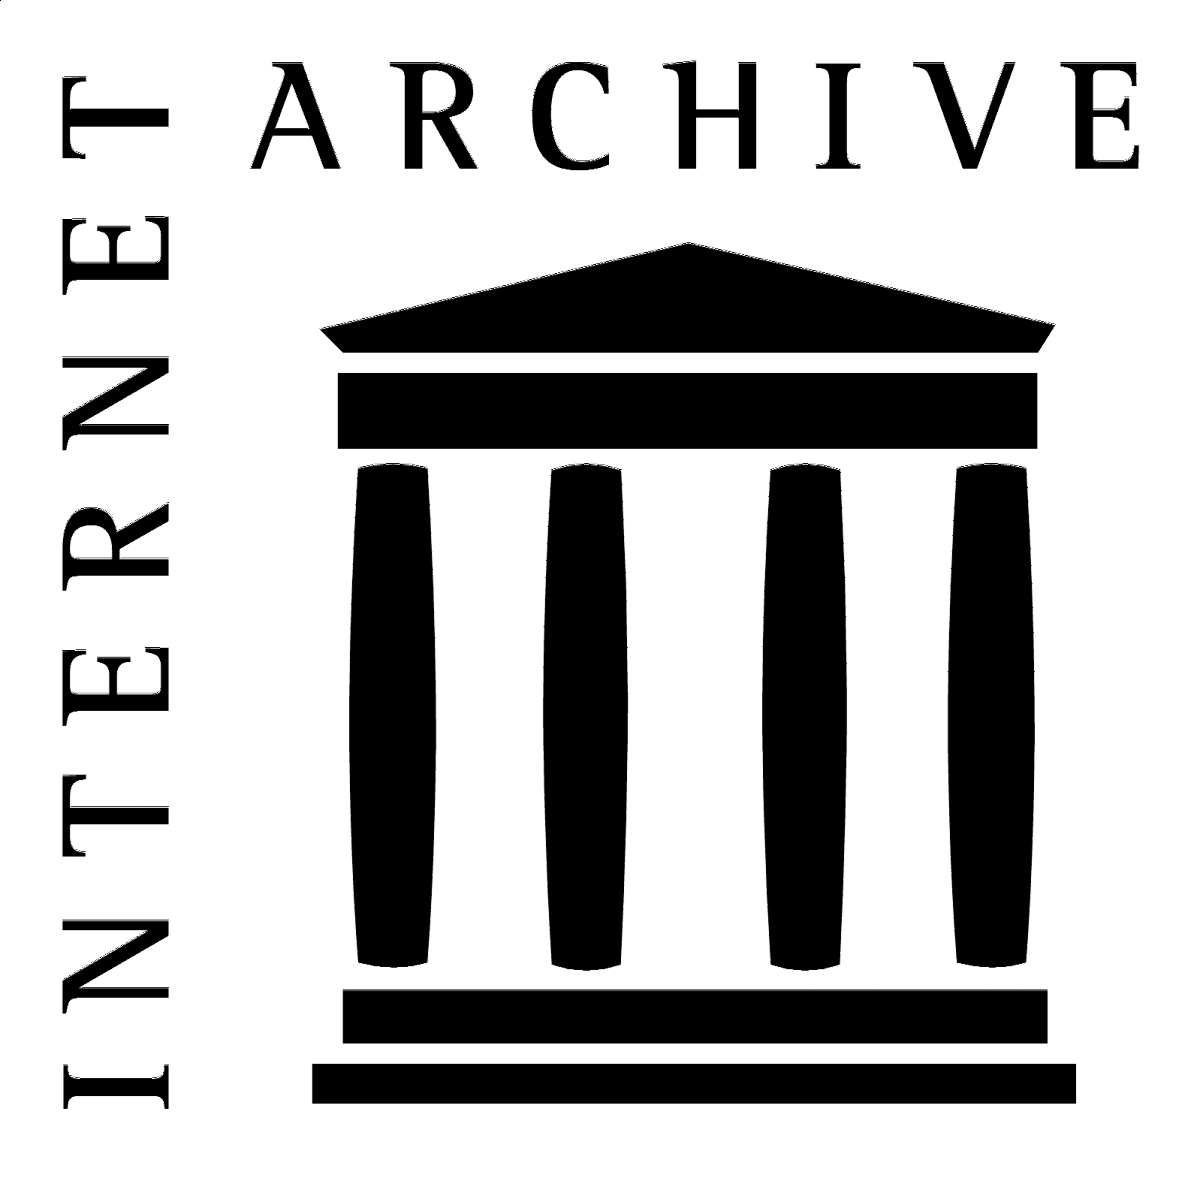 site archive.org